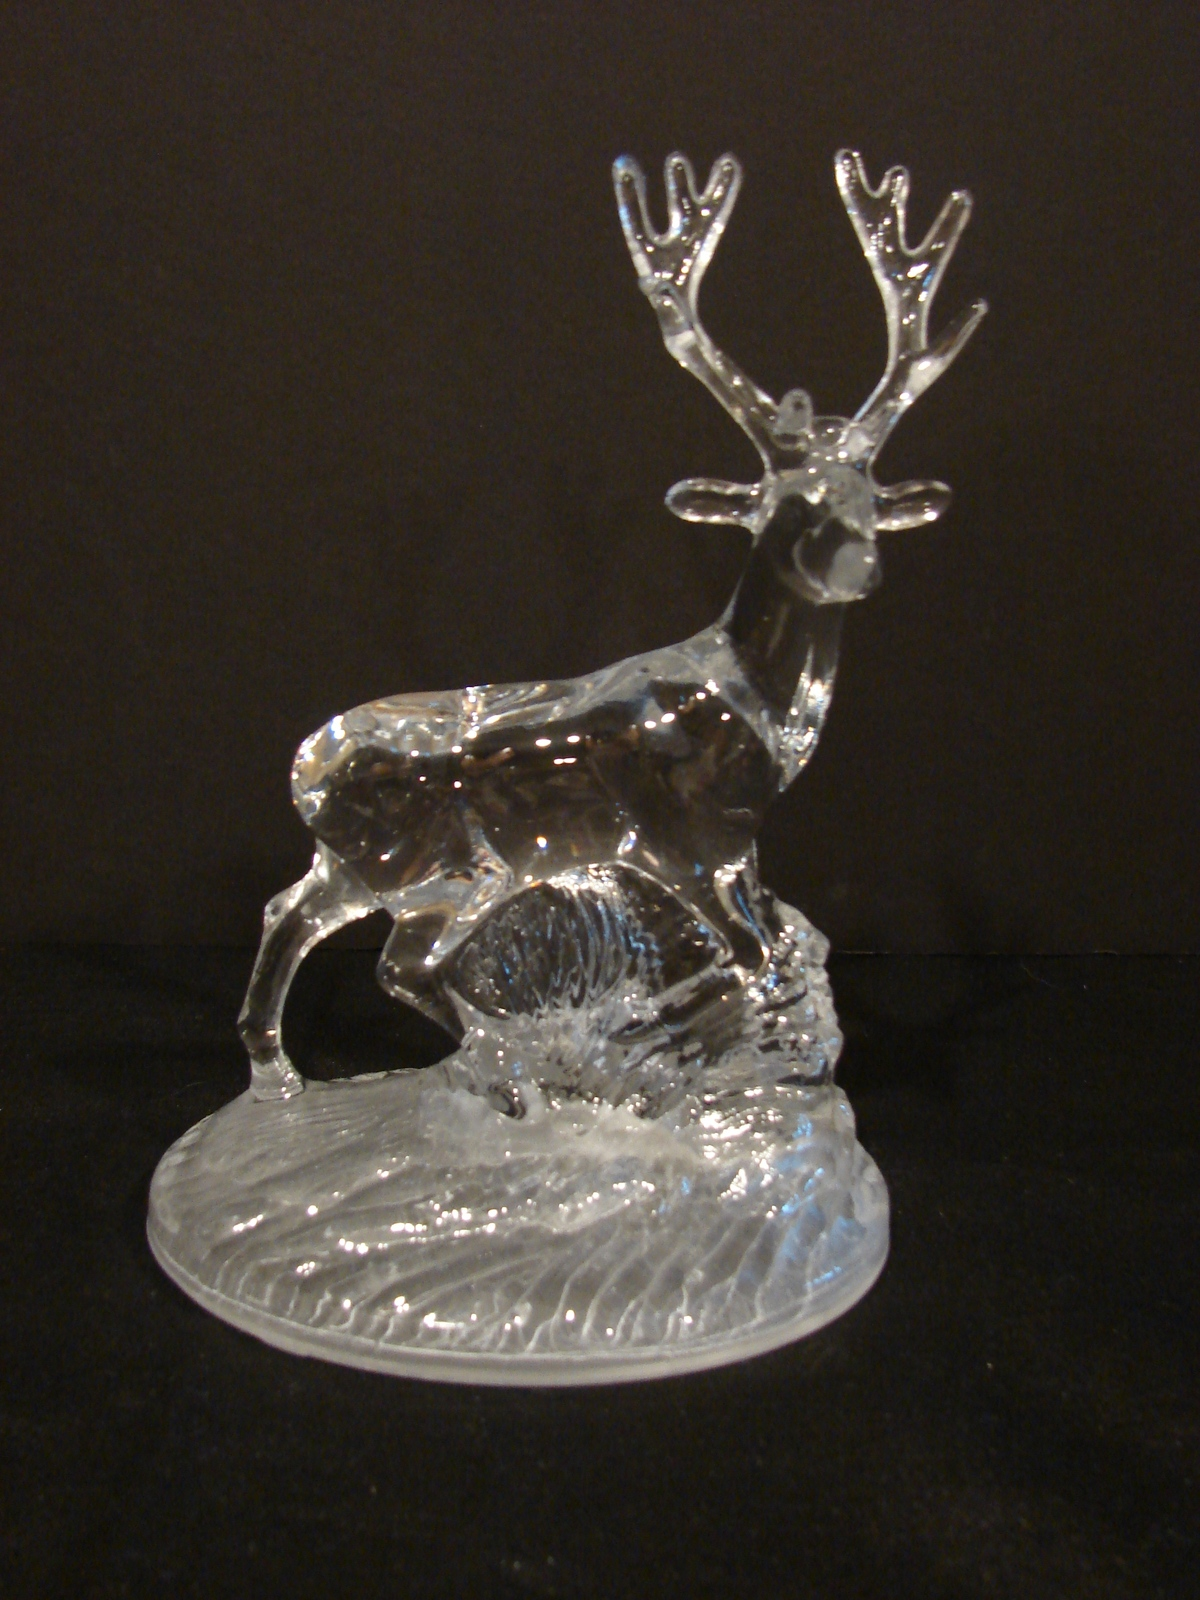 Primary image for Stag Deer Ornament Figure Cristal D' Arques Crystal (Rare)